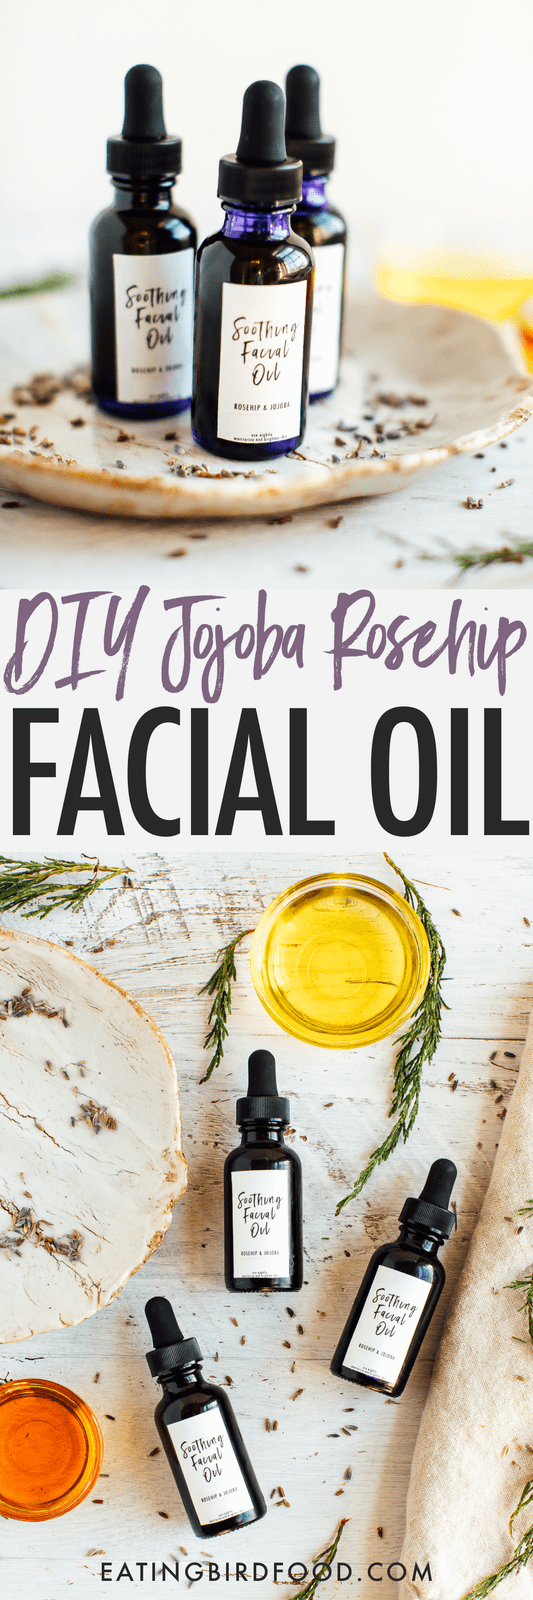 Rosehip, jojoba and lavender oil come together in this DIY facial oil with nourishing properties. Particularly good for those with dry, sensitive or aging skin. Includes printable labels, which are perfect if you're making this facial oil to give as a gift!